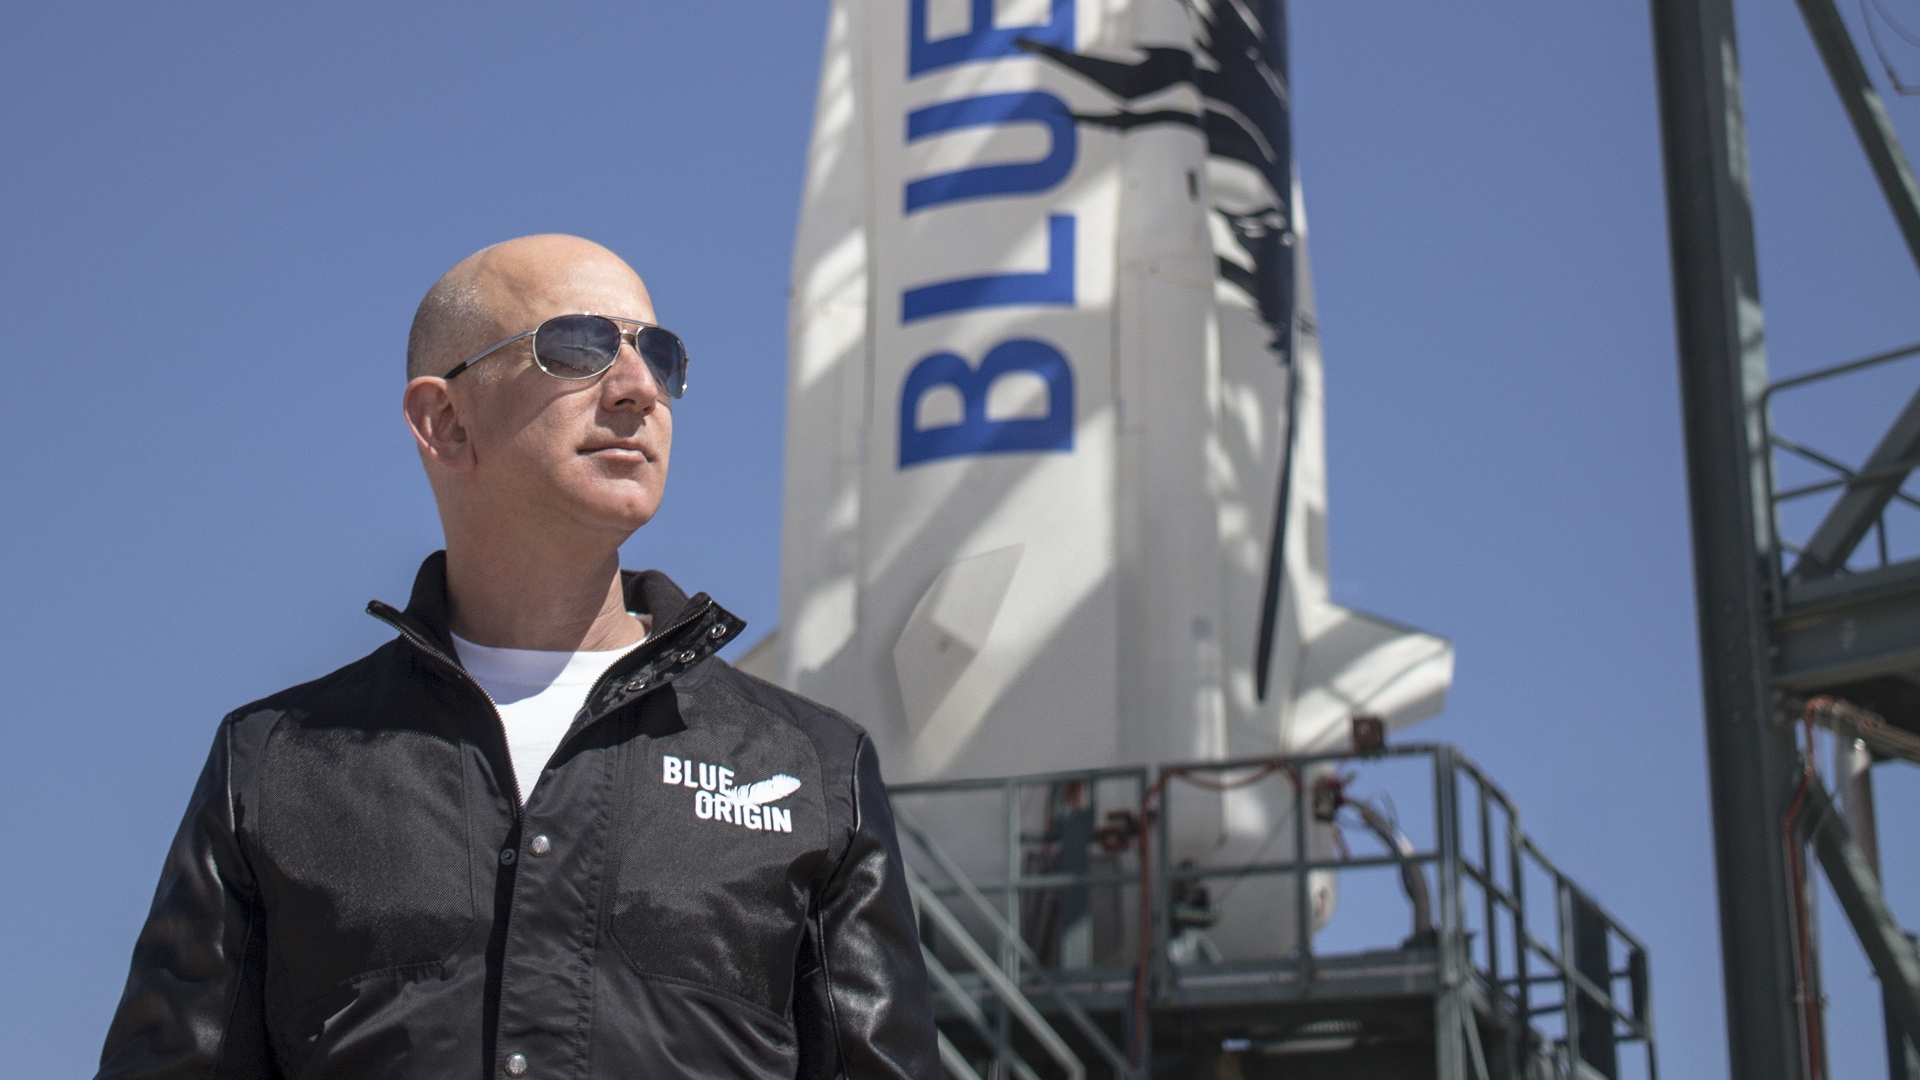 Jeff Bezos says he'll ride with Blue Origin's first space passengers in July